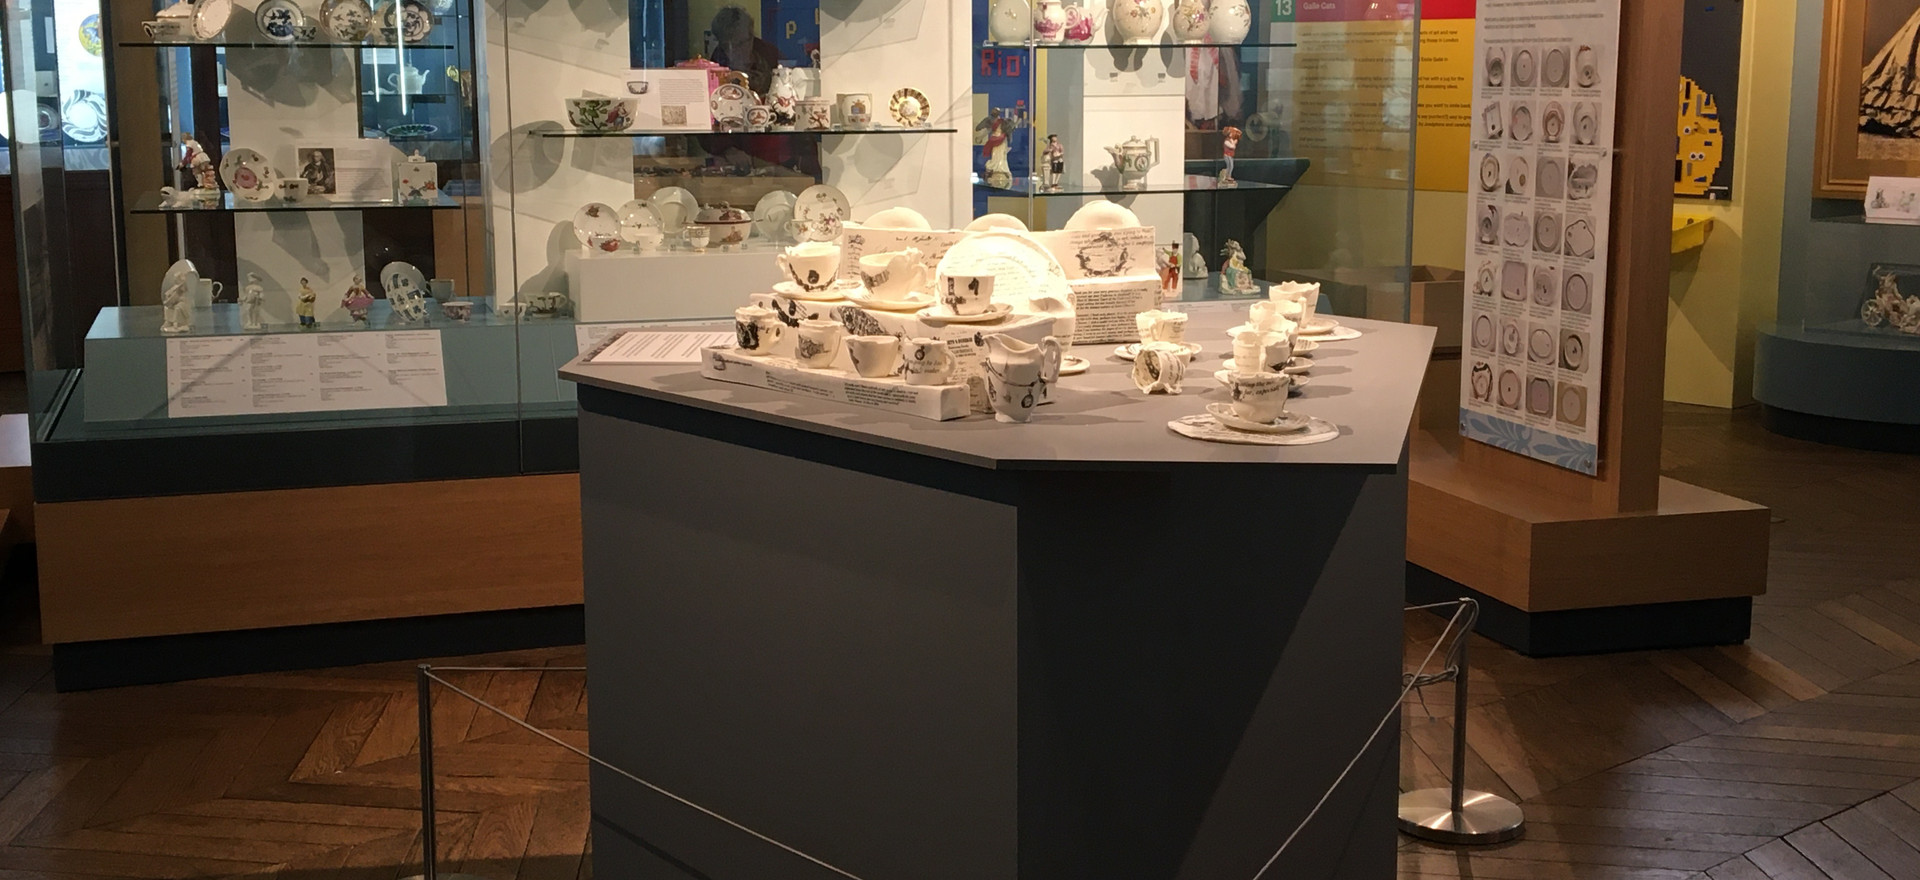 display in ceramic gallery.jpg